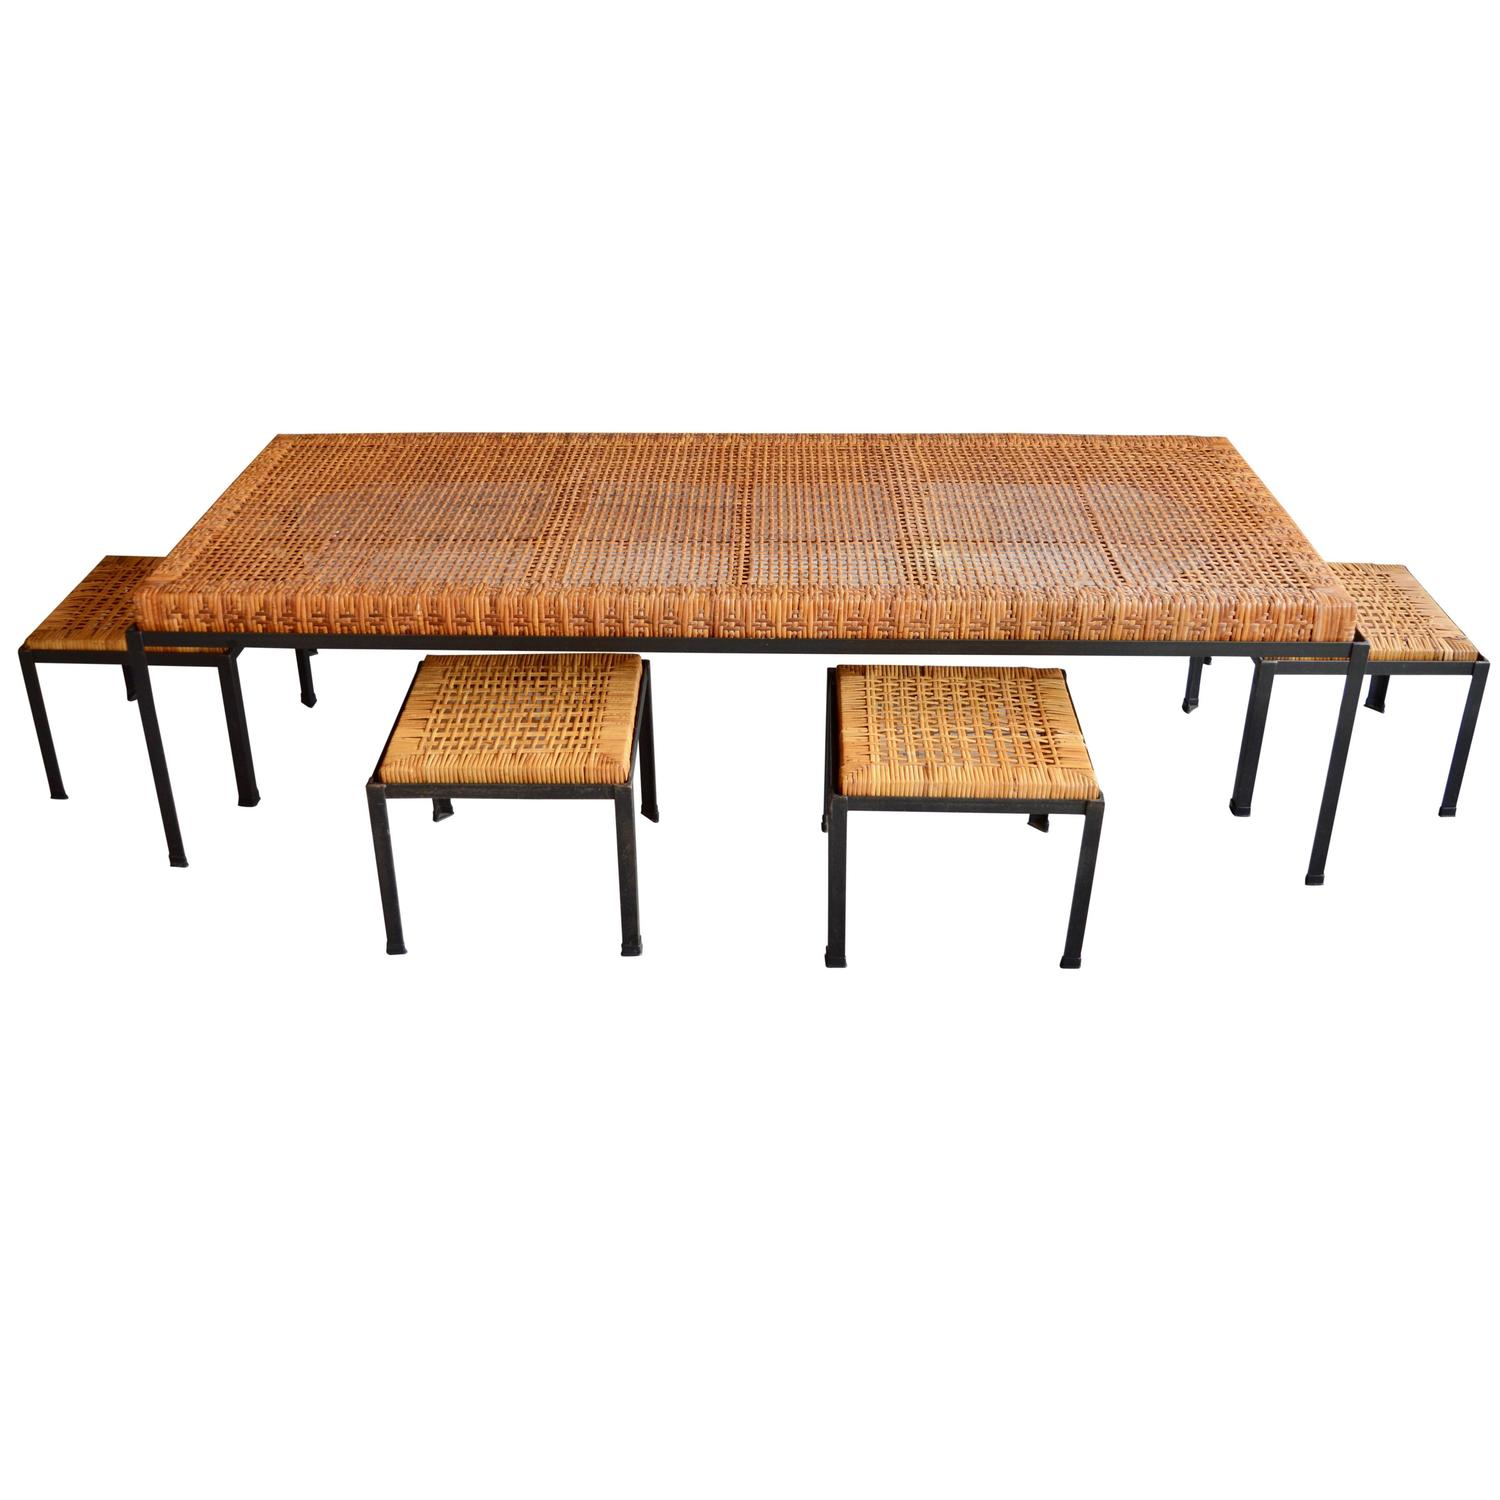 Rare Low Danny Ho Fong Table and Nesting Stools or Coffee Table at